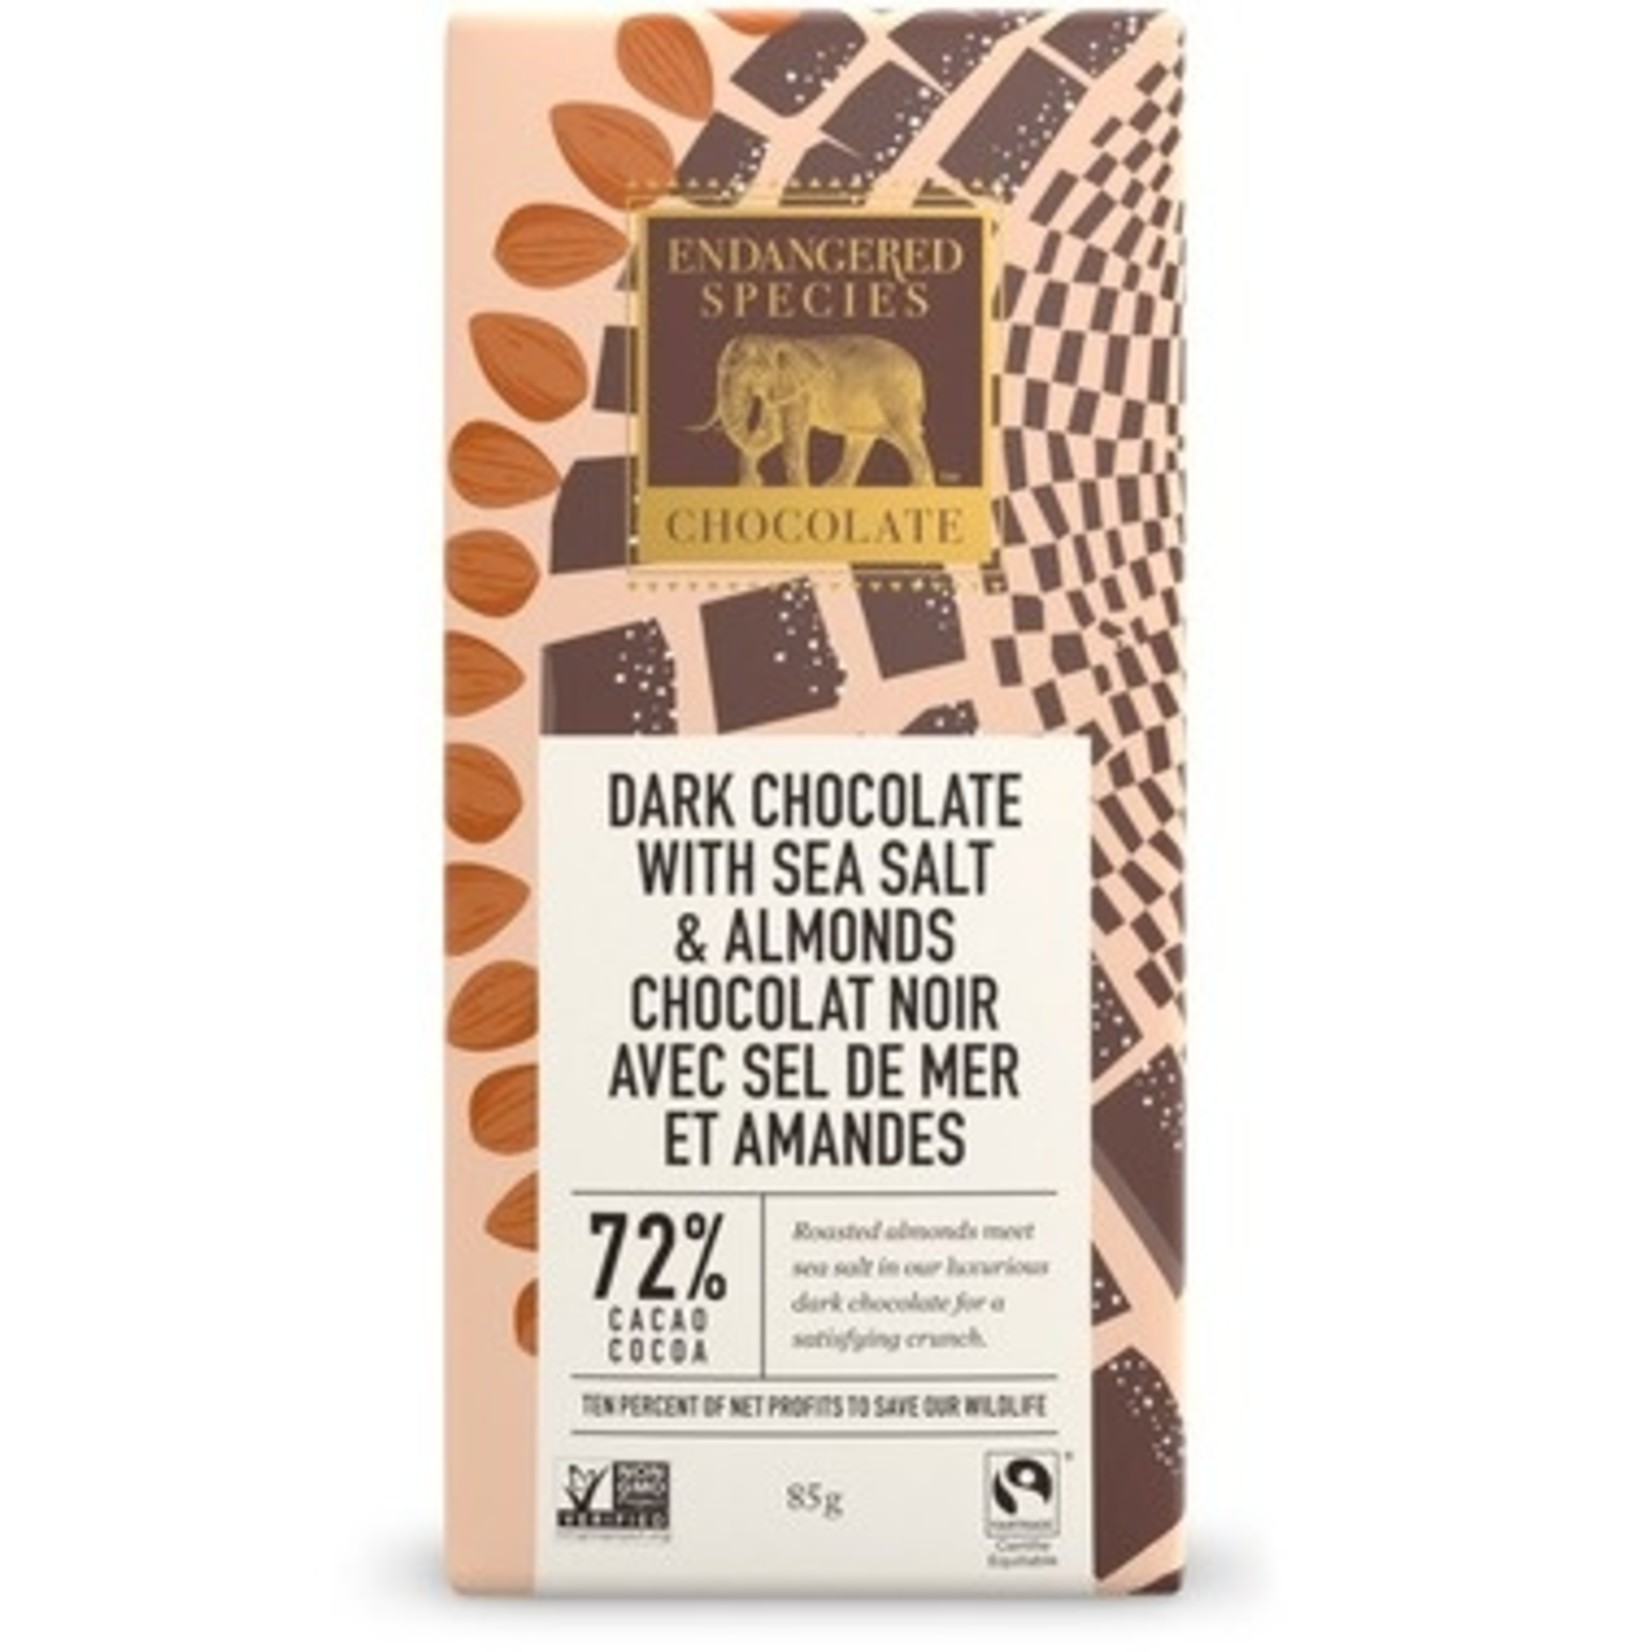 Endangered Species Dark Chocolate with Sea Salt and Almonds 72% Cacao 85g